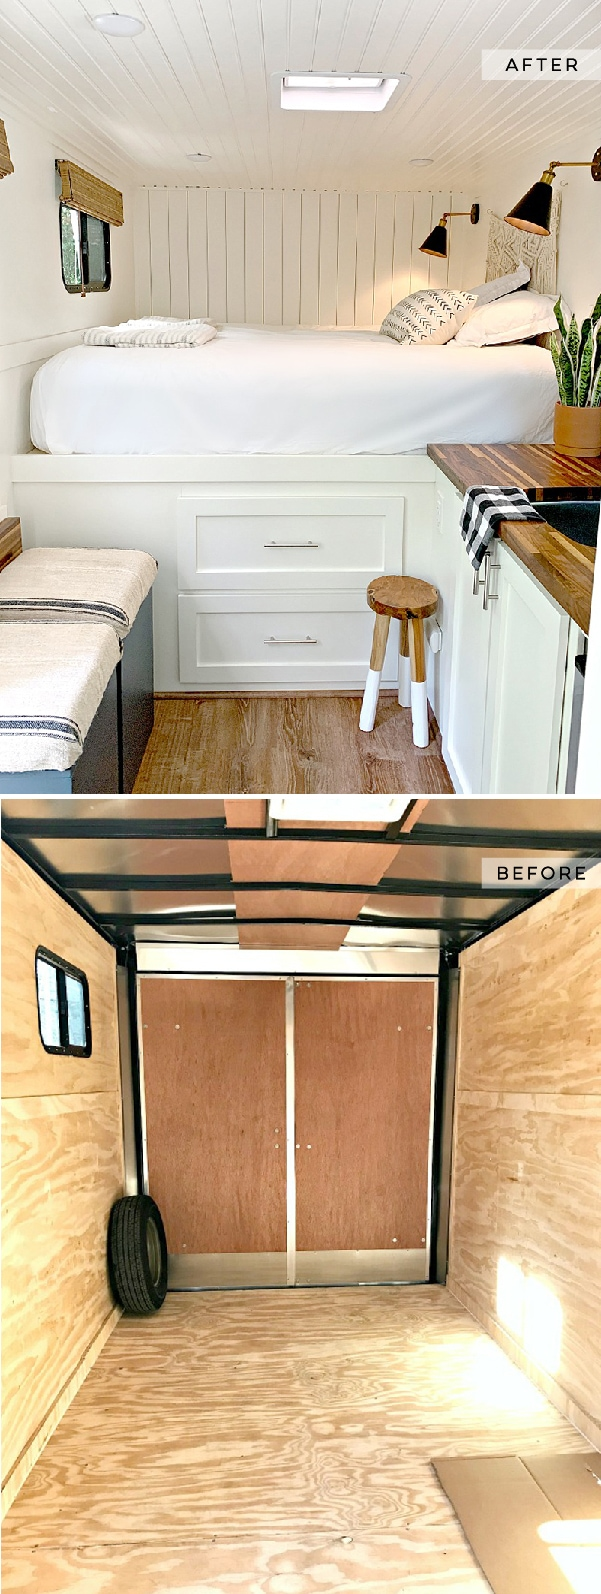 Cargo Trailer Converted into a Modern Camper from @ChatfieldCourt